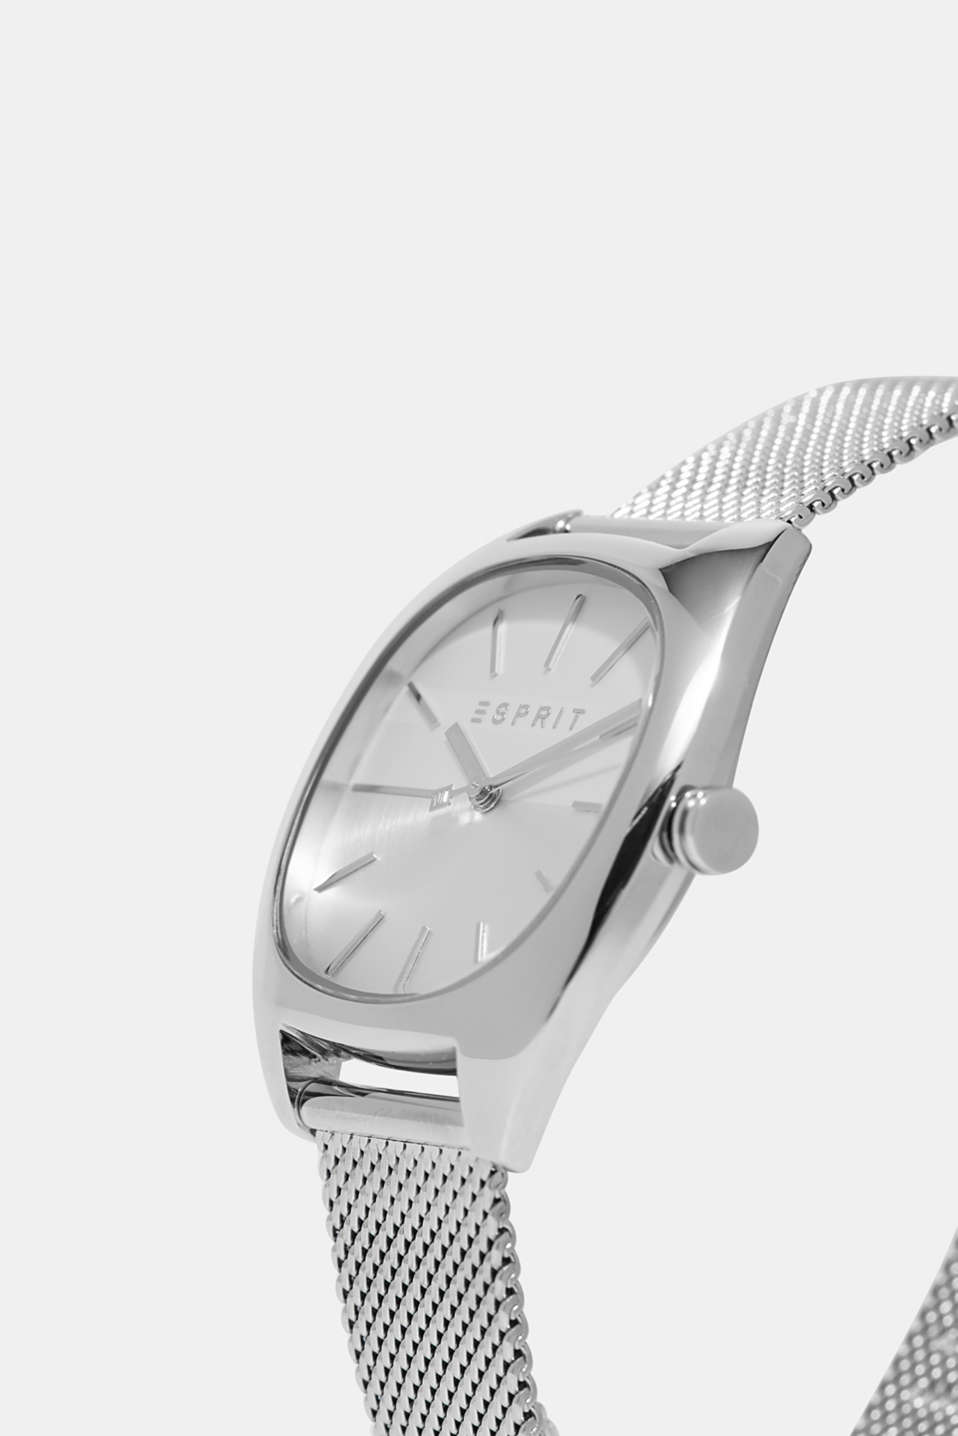 Watch with a silver mesh bracelet